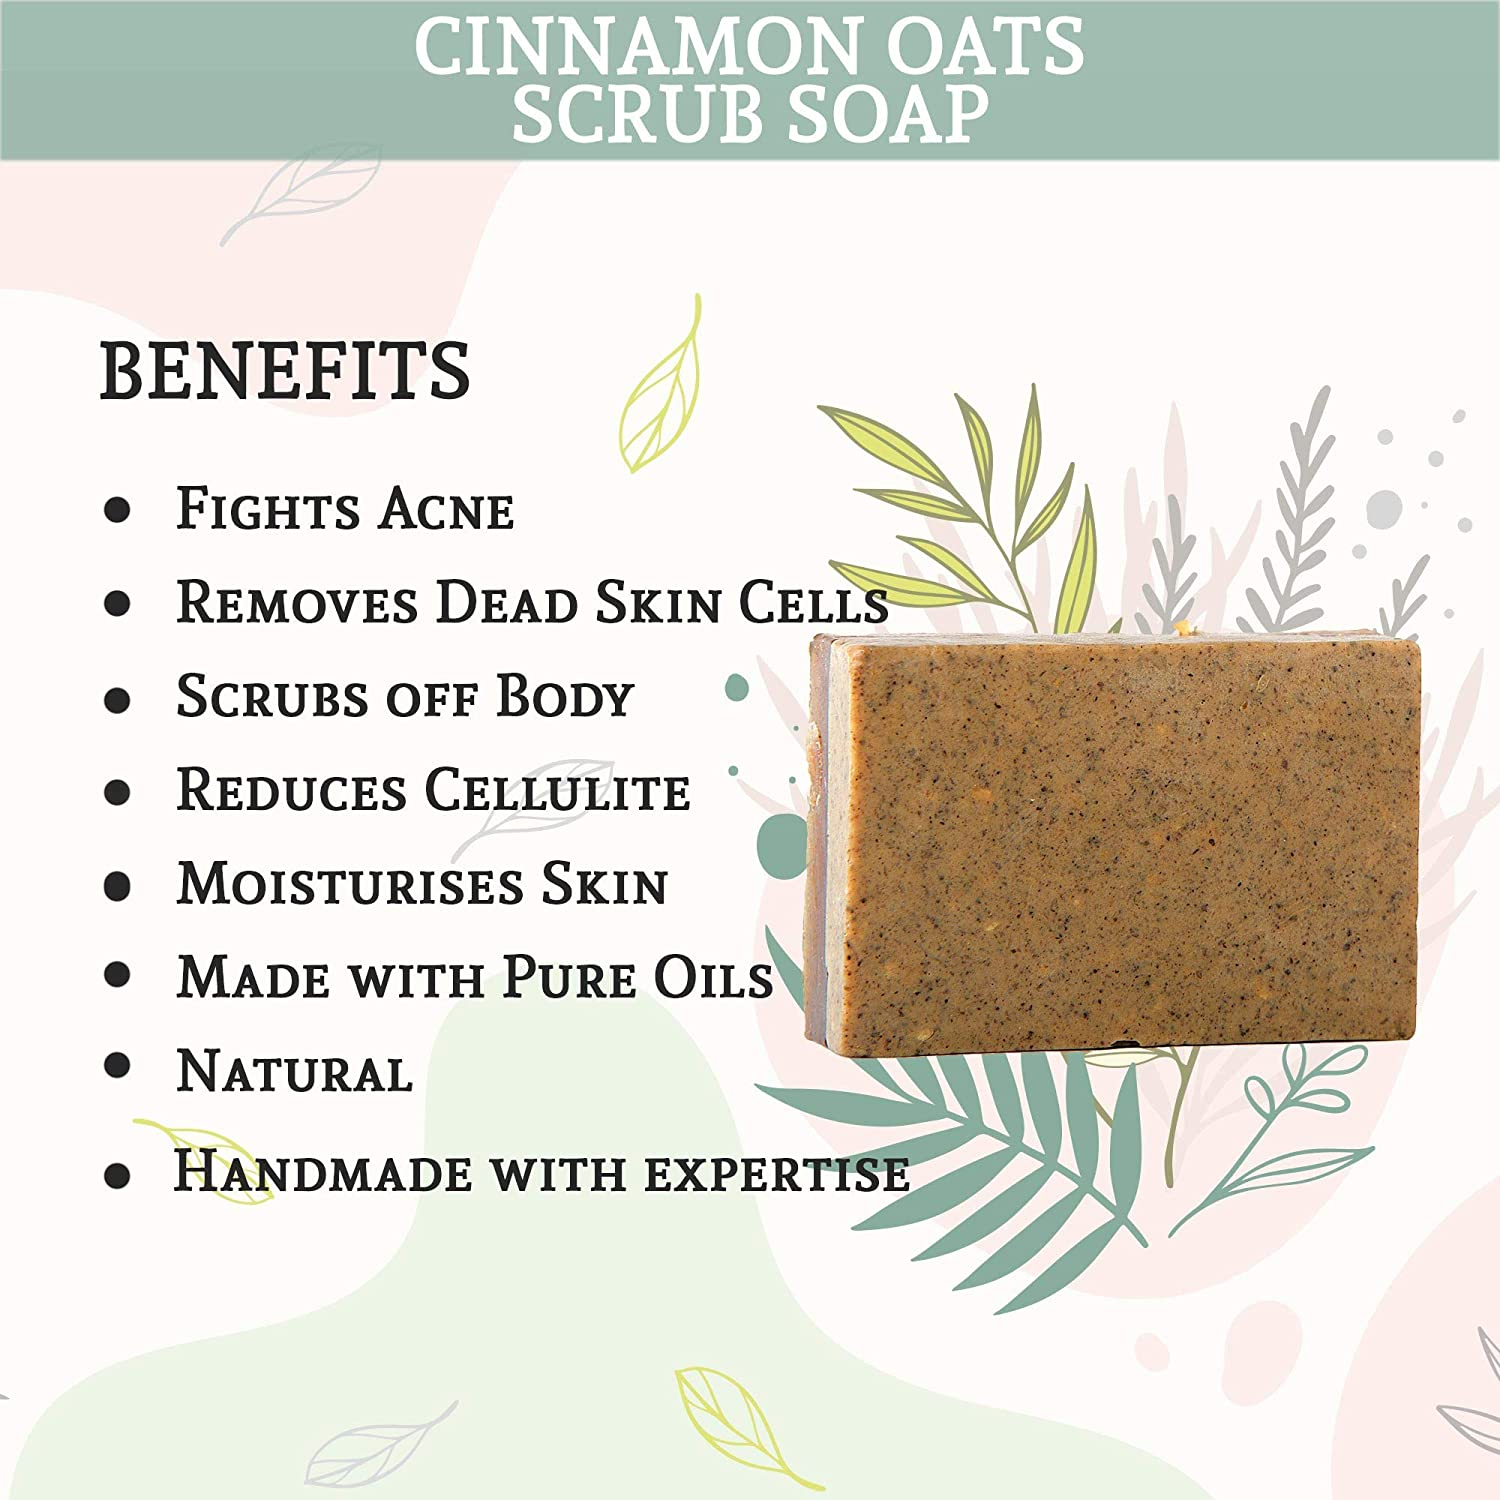 Buy Angtatva Cinnamon Oats Scrubs Soap Including Benefits Of Honey Glcerine Goat Milk Suits Every Skin Type 125g Online At Low Prices In India Amazon In